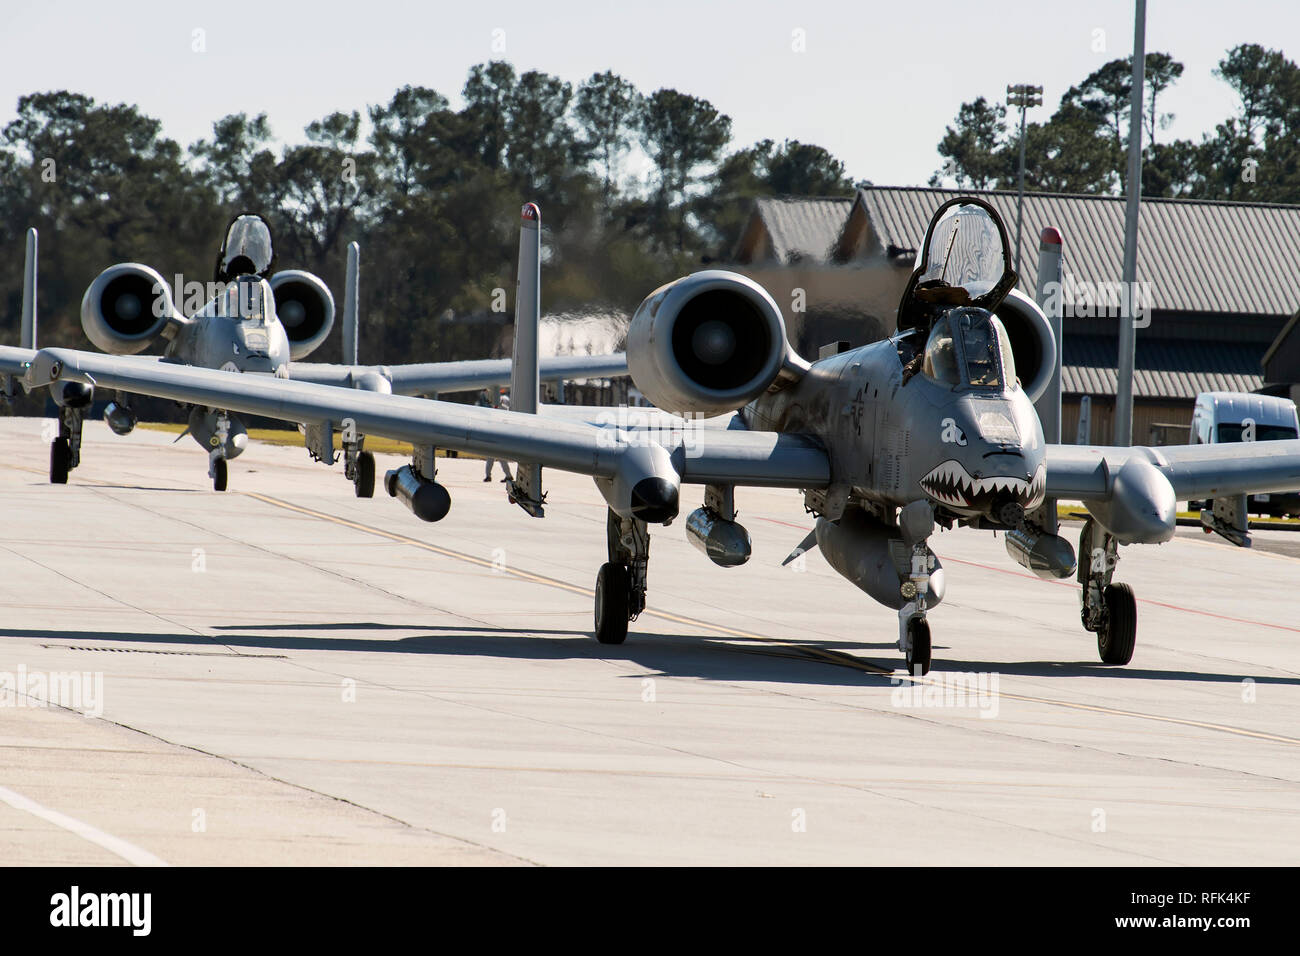 Airmen and aircraft from the 75th Fighter Squadron at Moody Air Force Base, Ga., return from supporting Operation Freedom's Sentinel, Jan. 25, 2019. The A-10C Thunderbolt II, which has an increased loiter time and weapons capabilities, deployed to southwest Asia in support of ground forces. (U.S. Air Force photo By Airman First Class Eugene Oliver) Stock Photo